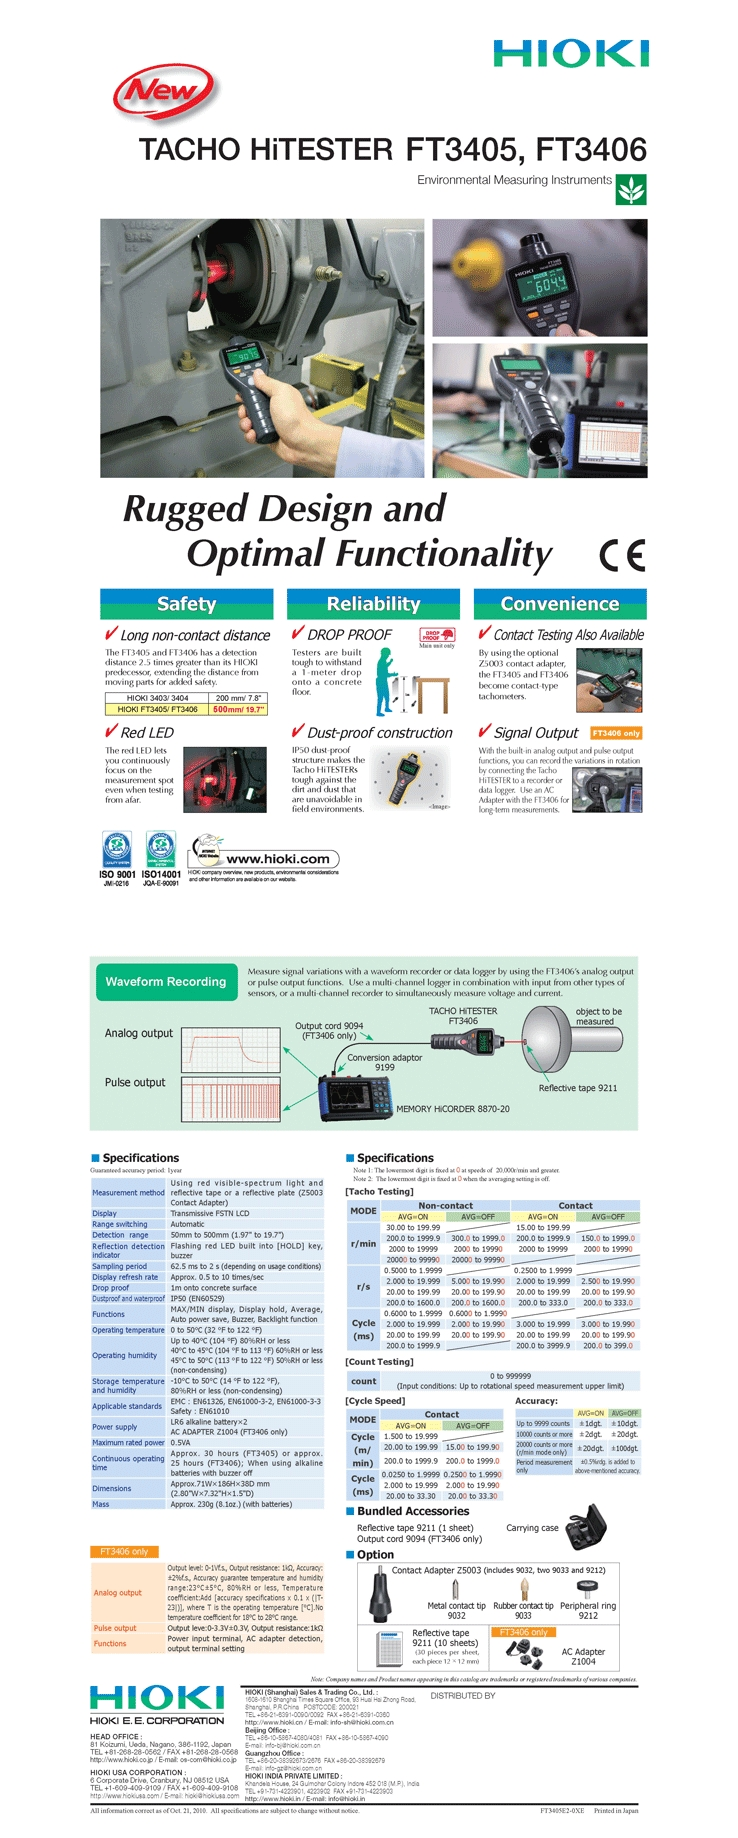 Tekkammall Infrared Thermo Hi Tester Hioki Ft3701 20 Technical Specifications